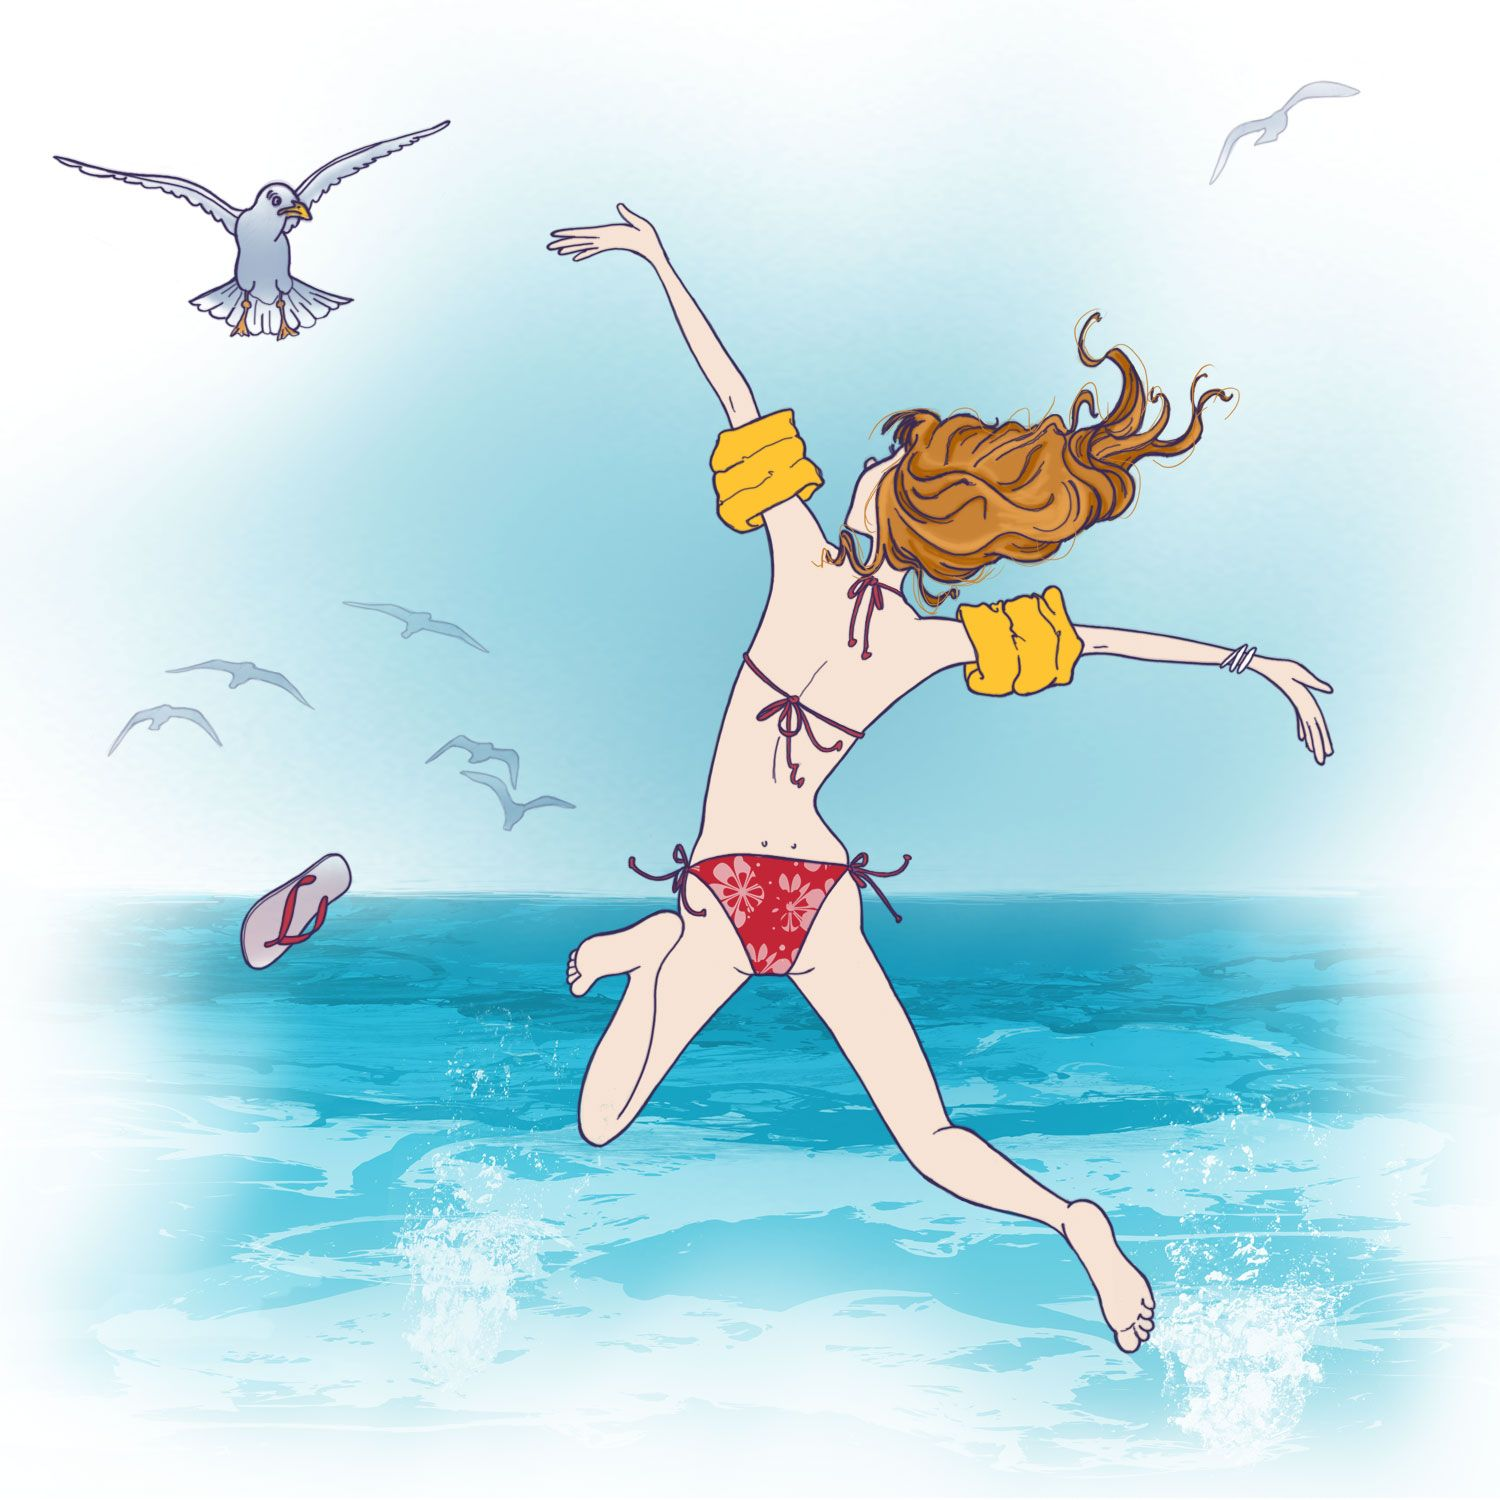 Illustration t mer vacances images in 2018 pinterest illustration dessin and dessin - Dessin vacances mer ...